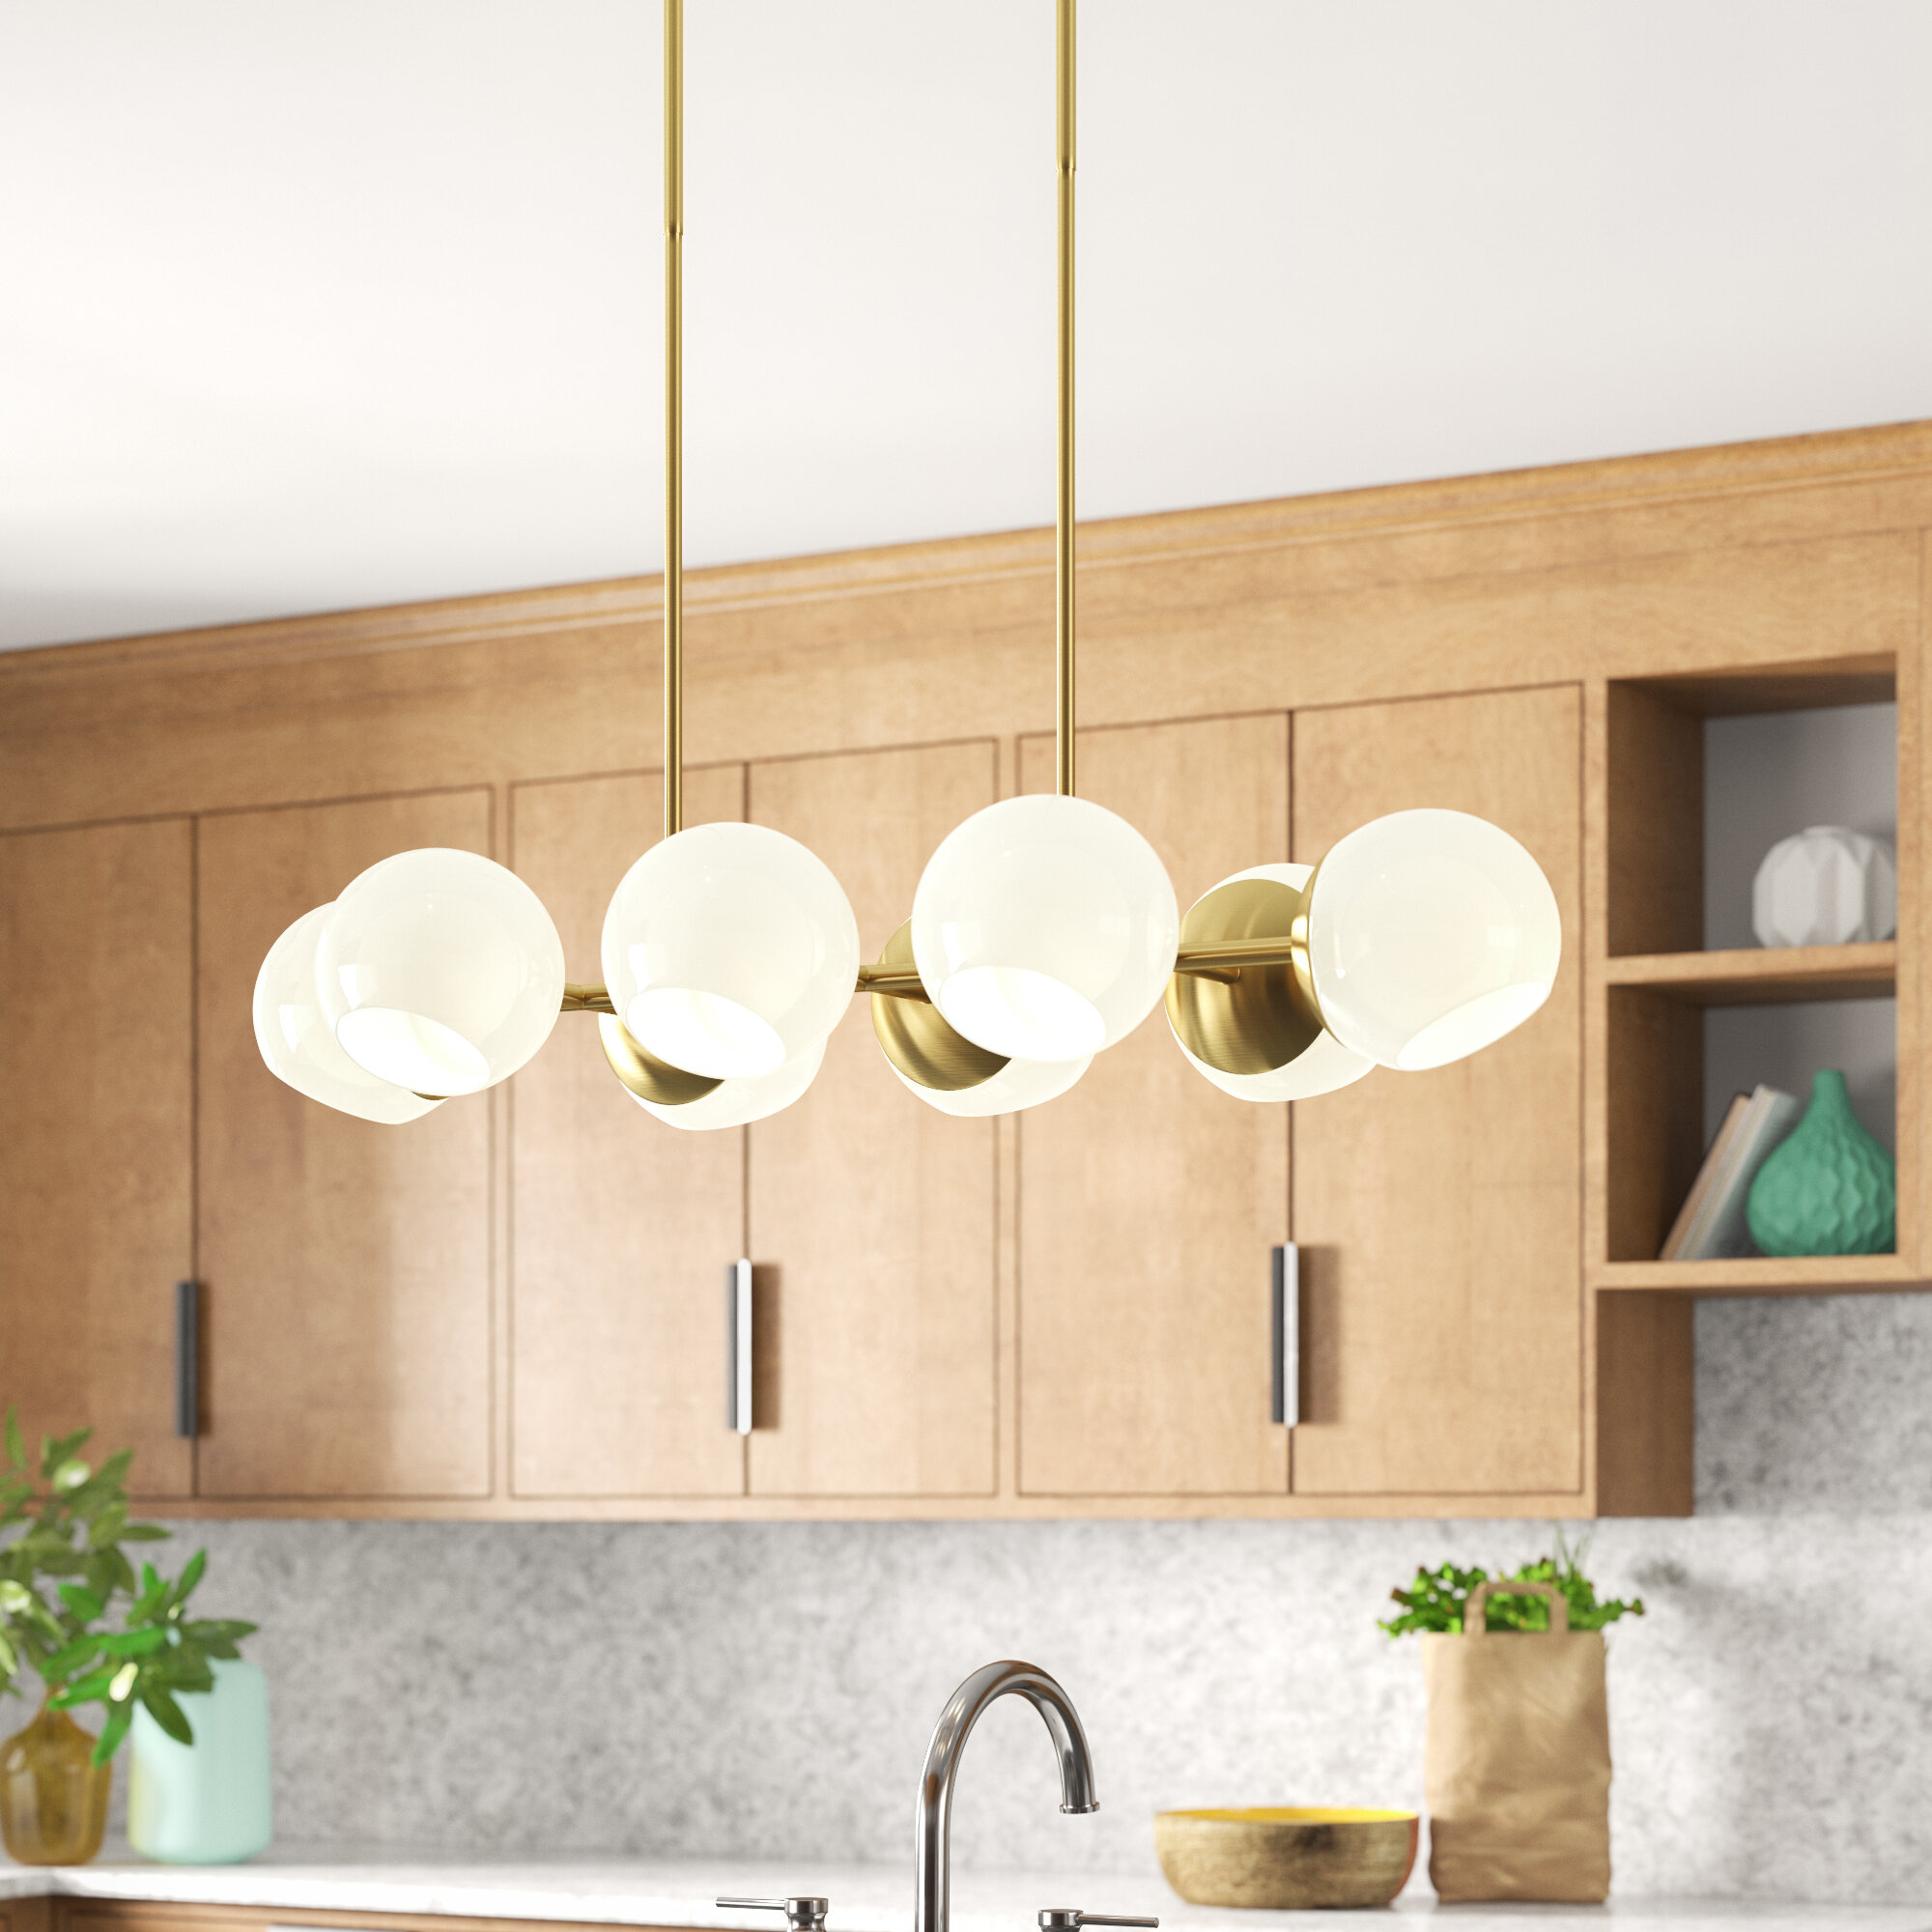 Ashley 8 Light Kitchen Island Linear Pendant For Neal 9 Light Kitchen Island Teardrop Pendants (View 2 of 30)